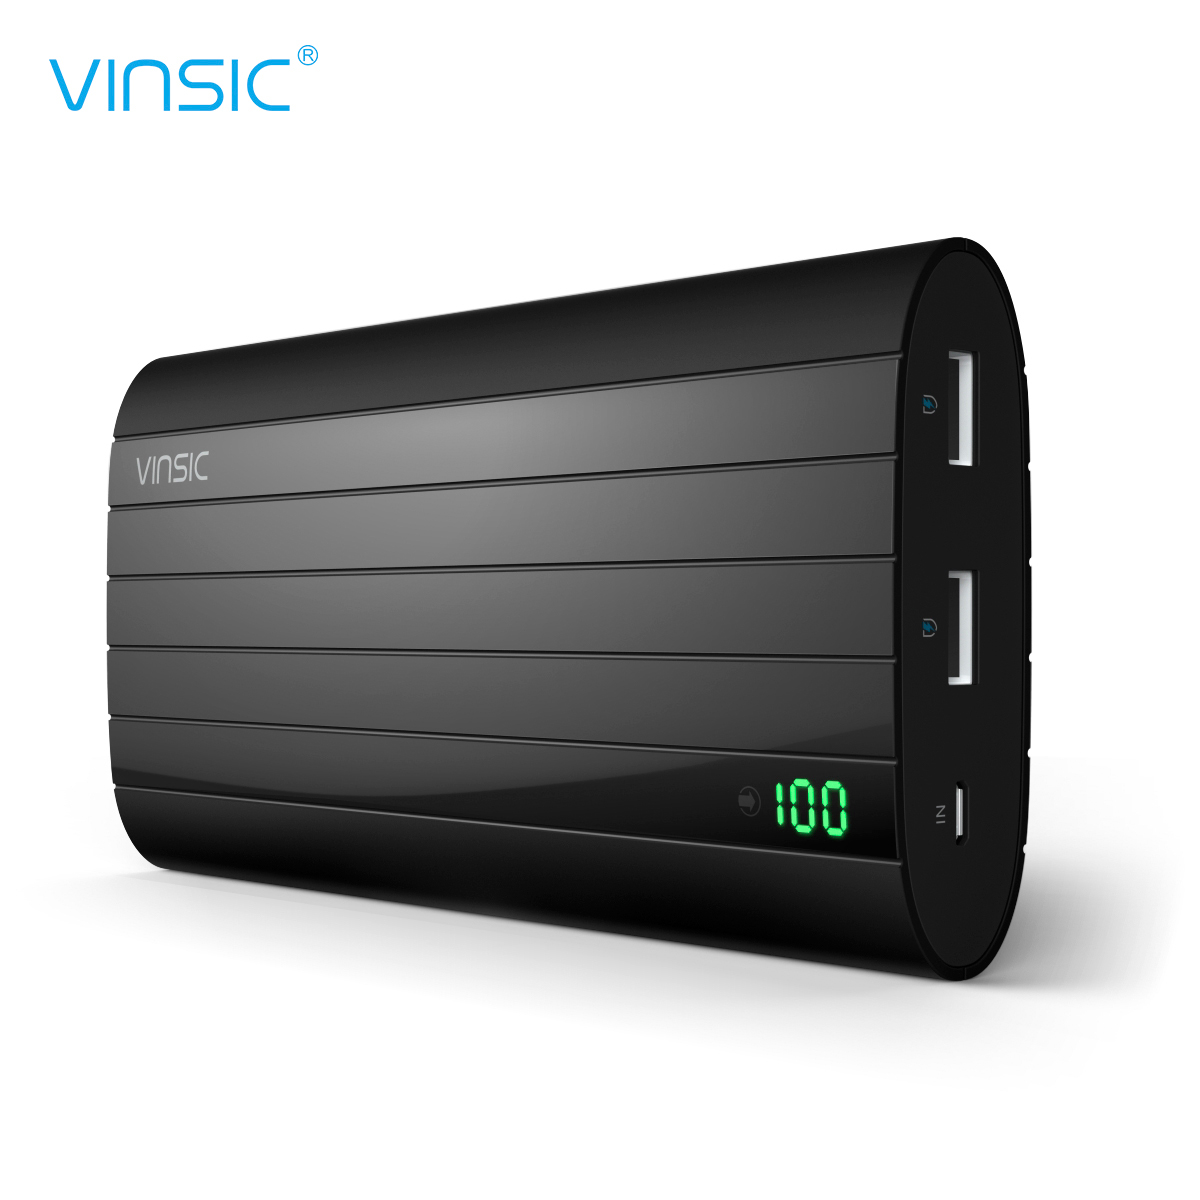 Power bank,Vinsic PB206 20000mAh 5V 2.4A Ultra Slim Dual USB Portable Charger External Battery pack backup for all Smart phones-Black